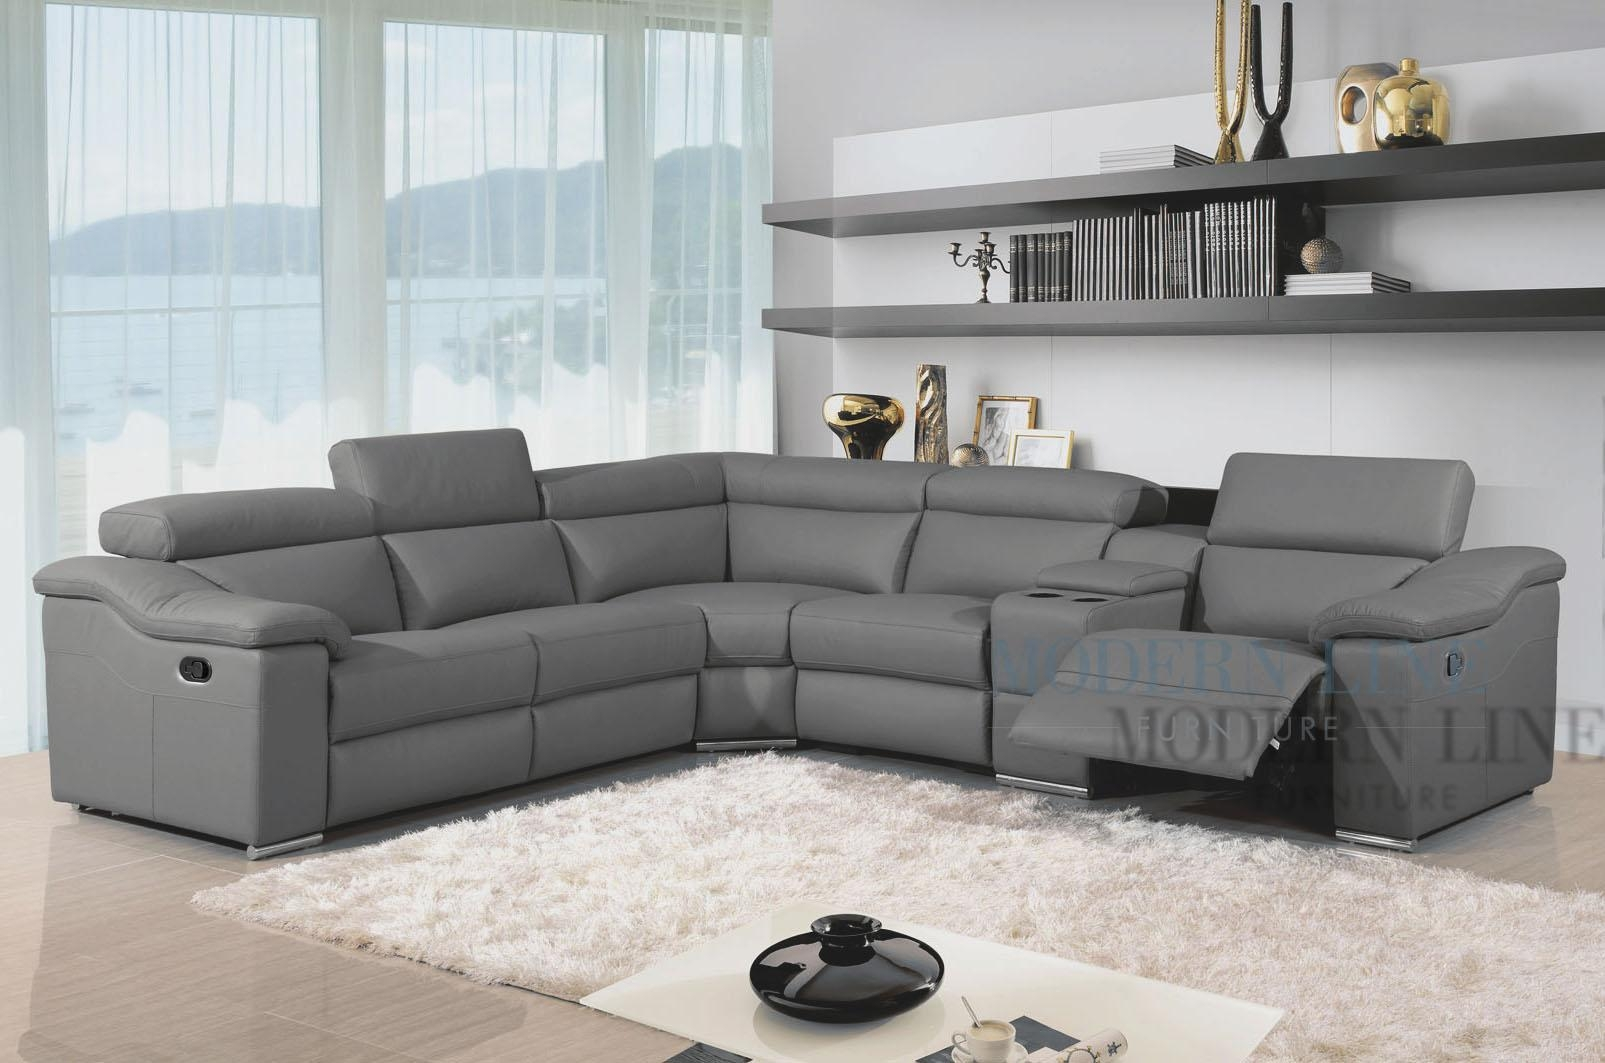 Furniture: Winsome Arcana Sectional Couches Cheap For Exqusite Regarding Cheap Black Sofas (Image 9 of 20)